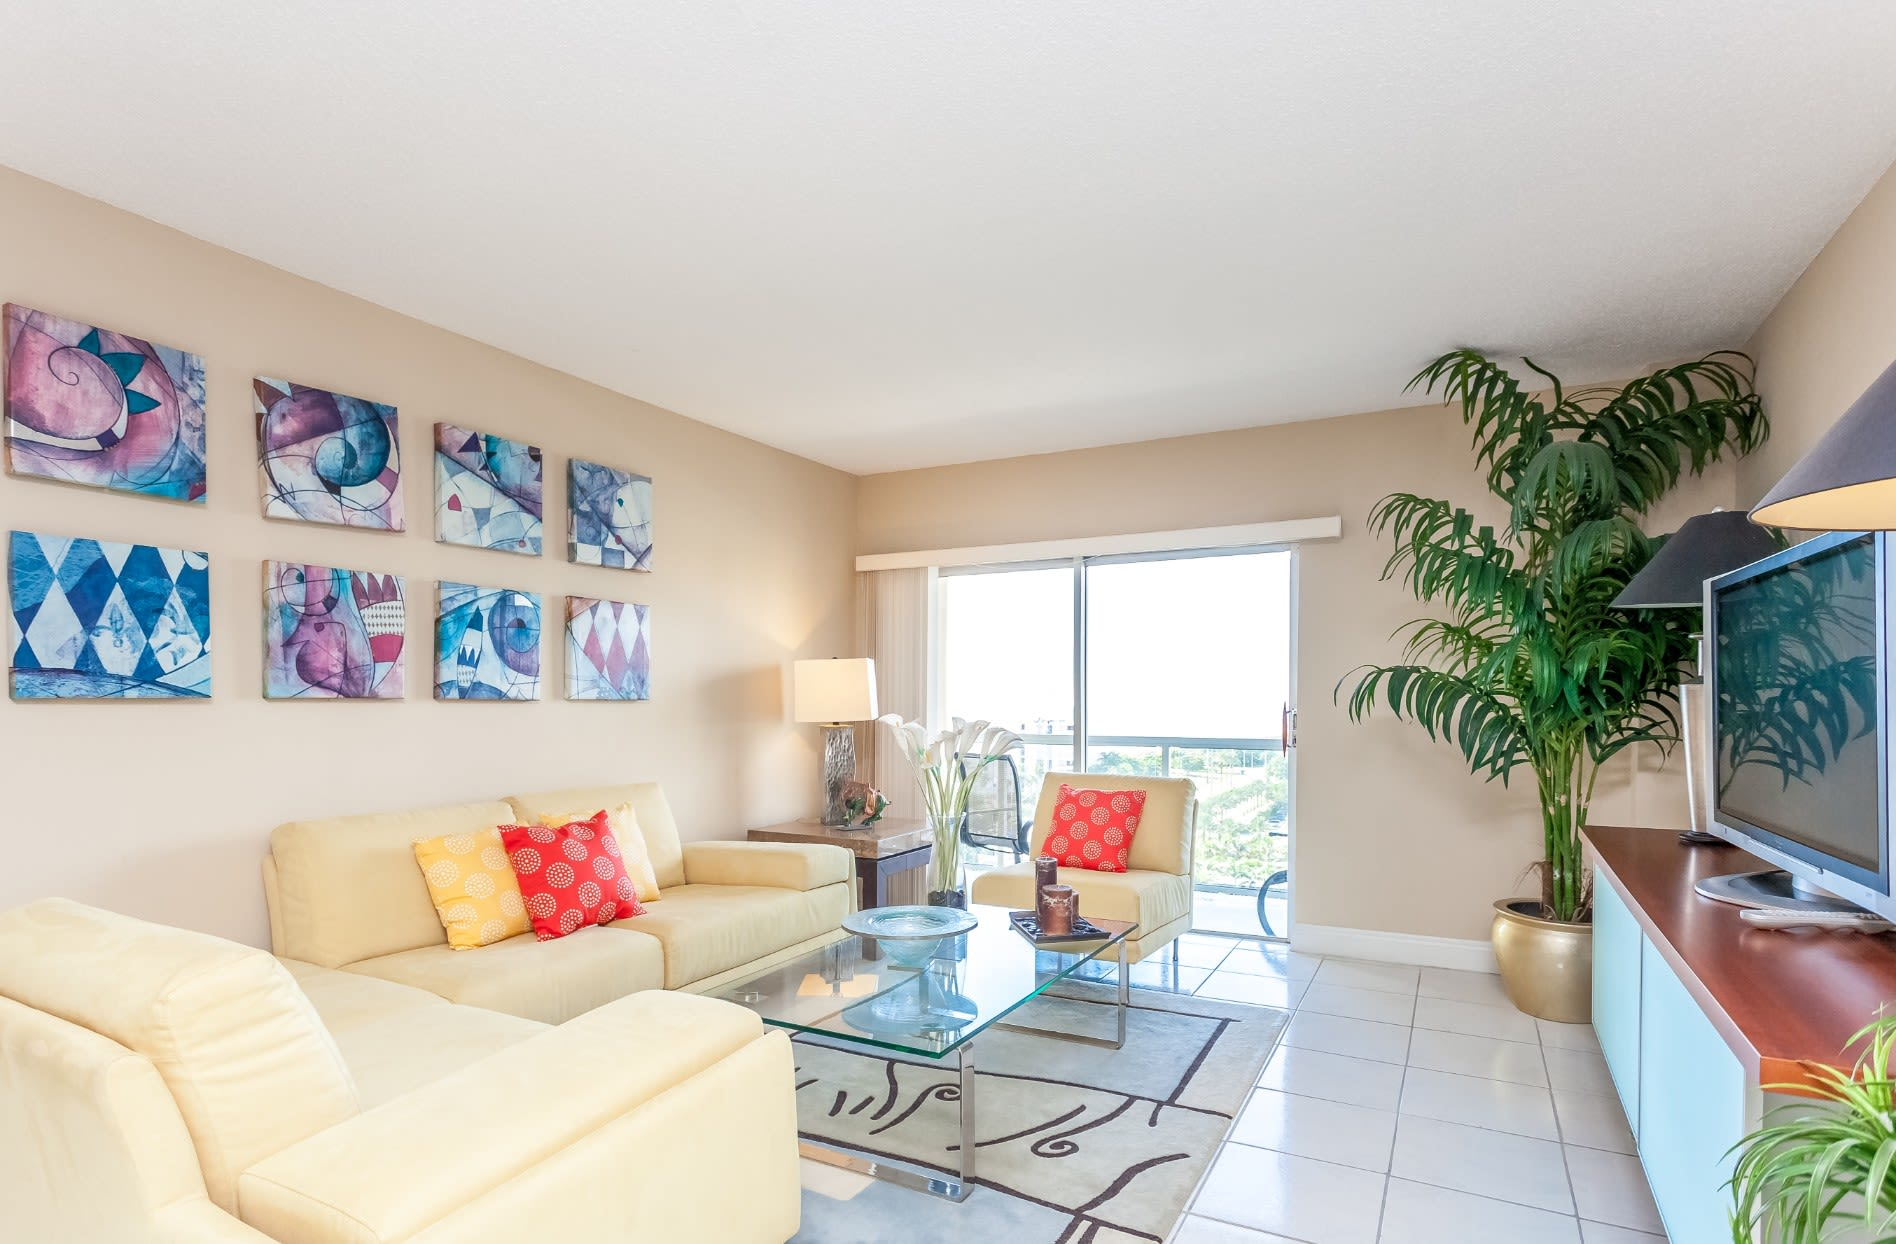 From our Sunny Isles Beach, FL apartment homes